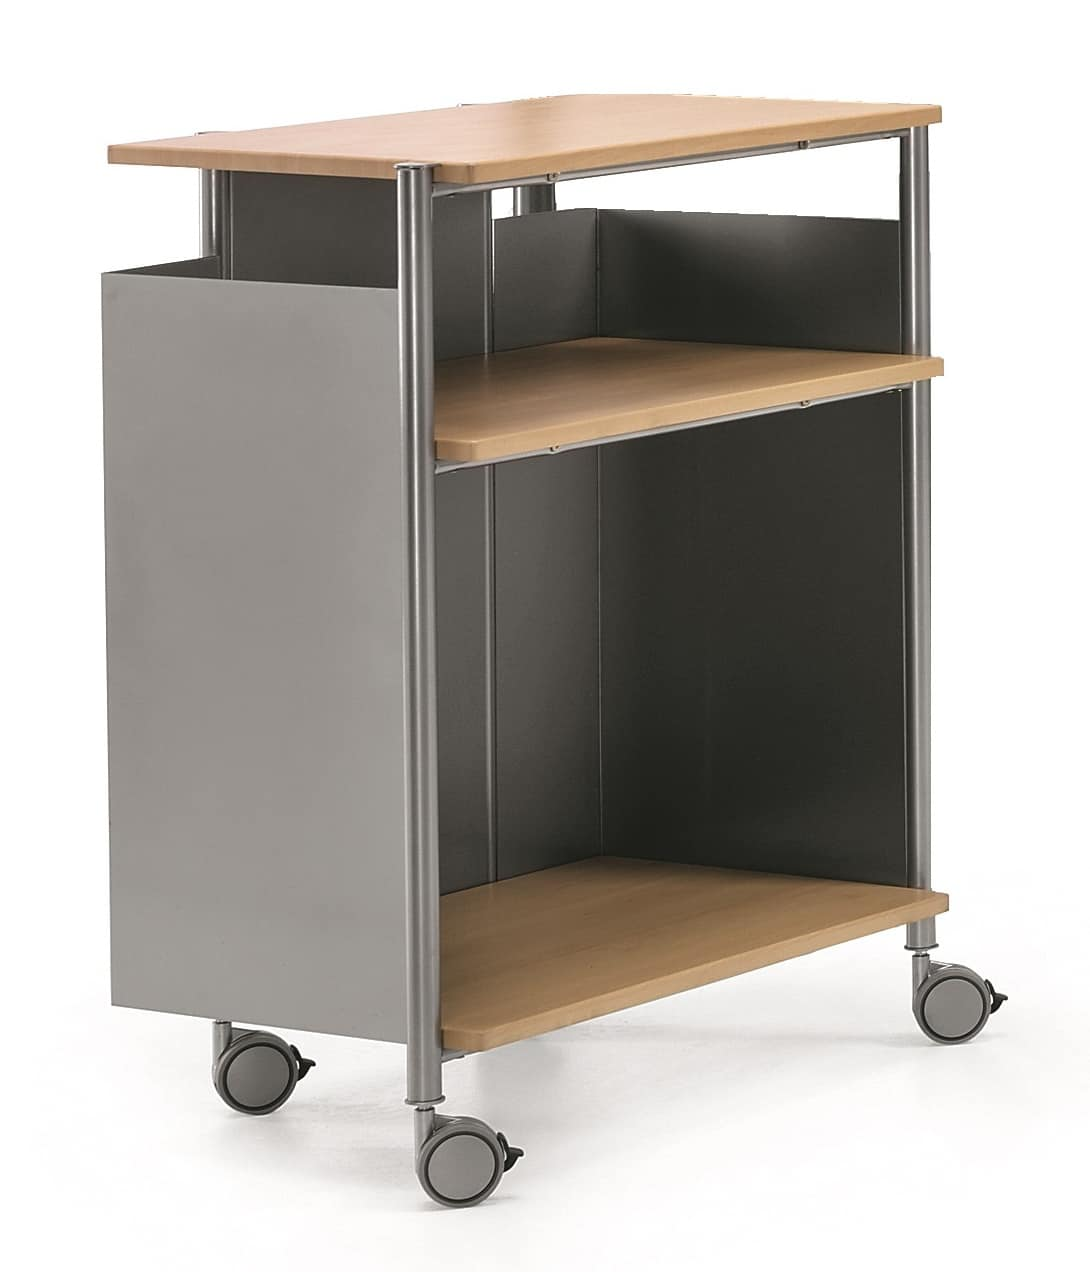 MULTIKOM 3009, Utility cart in steel and plywood, for offices